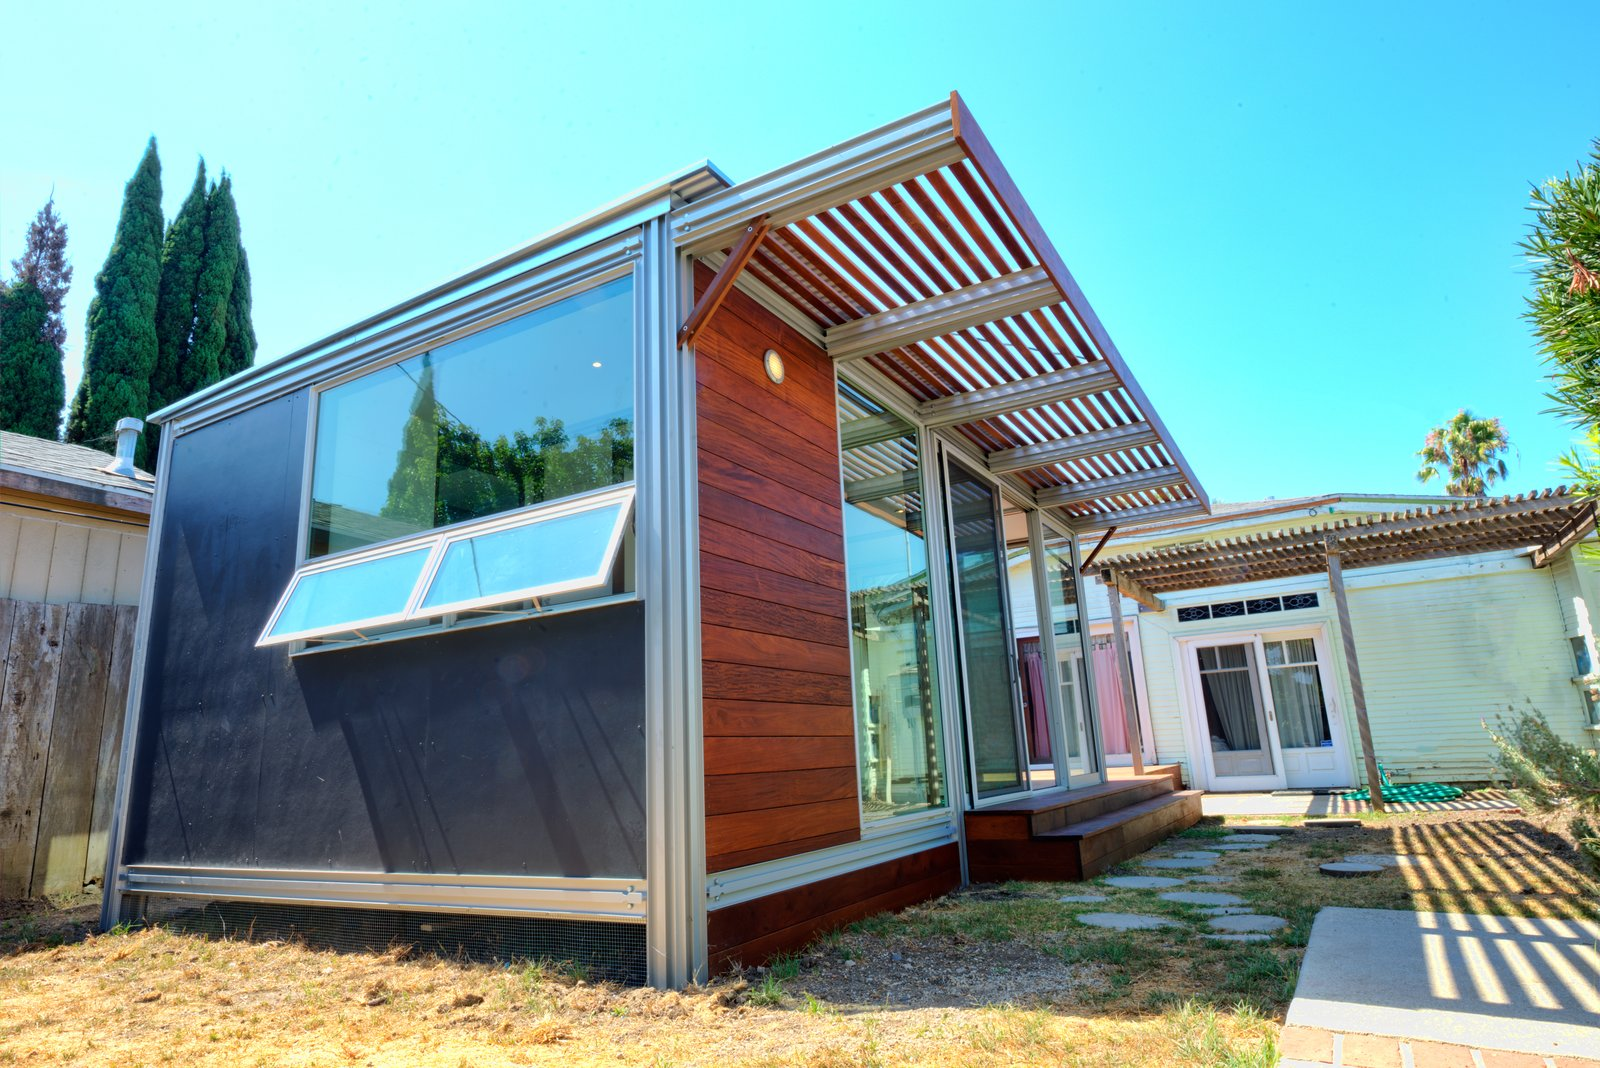 If you're willing to sacrifice space for a super-low price tag in your search for modular homes under $10K, the K3 by KitHaus is an option. It's adaptable as a backyard studio, home office, pool house, or play room, to name a few options. Its exterior is clad in corrugated galvalume or smooth, natural cement board with corrugated roofing, and floors are natural hardwood or finished plywood.